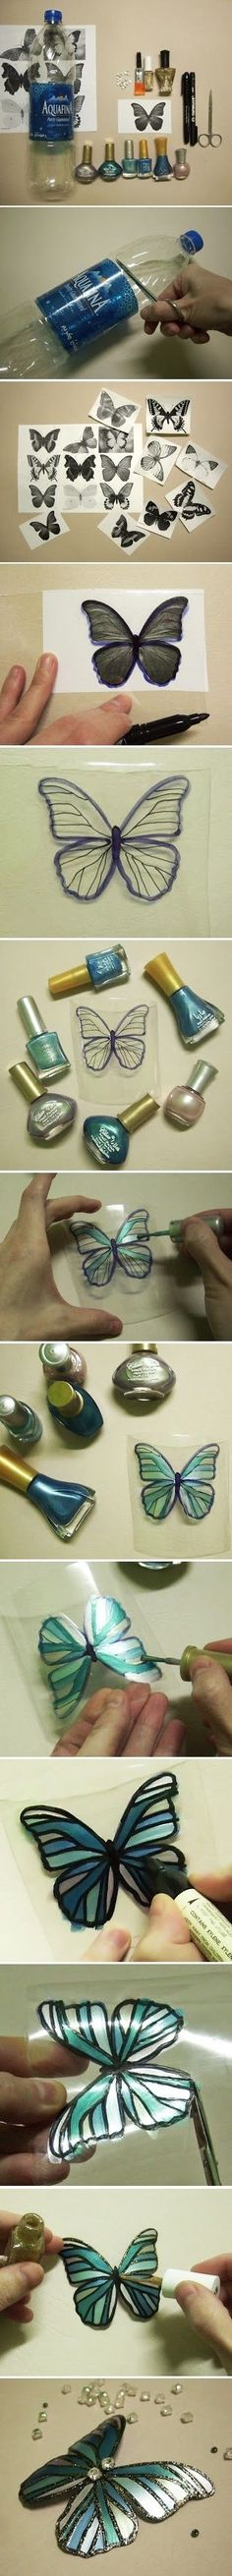 DIY Butterflies diy crafts craft ideas easy crafts diy ideas diy idea diy home diy vase easy diy for the home crafty decor home ideas diy decorations - Amazing Diy Gifts Cute Crafts, Crafts To Do, Crafts For Kids, Arts And Crafts, Paper Crafts, Diy Crafts, Teen Crafts, Decor Crafts, Diy Butterfly